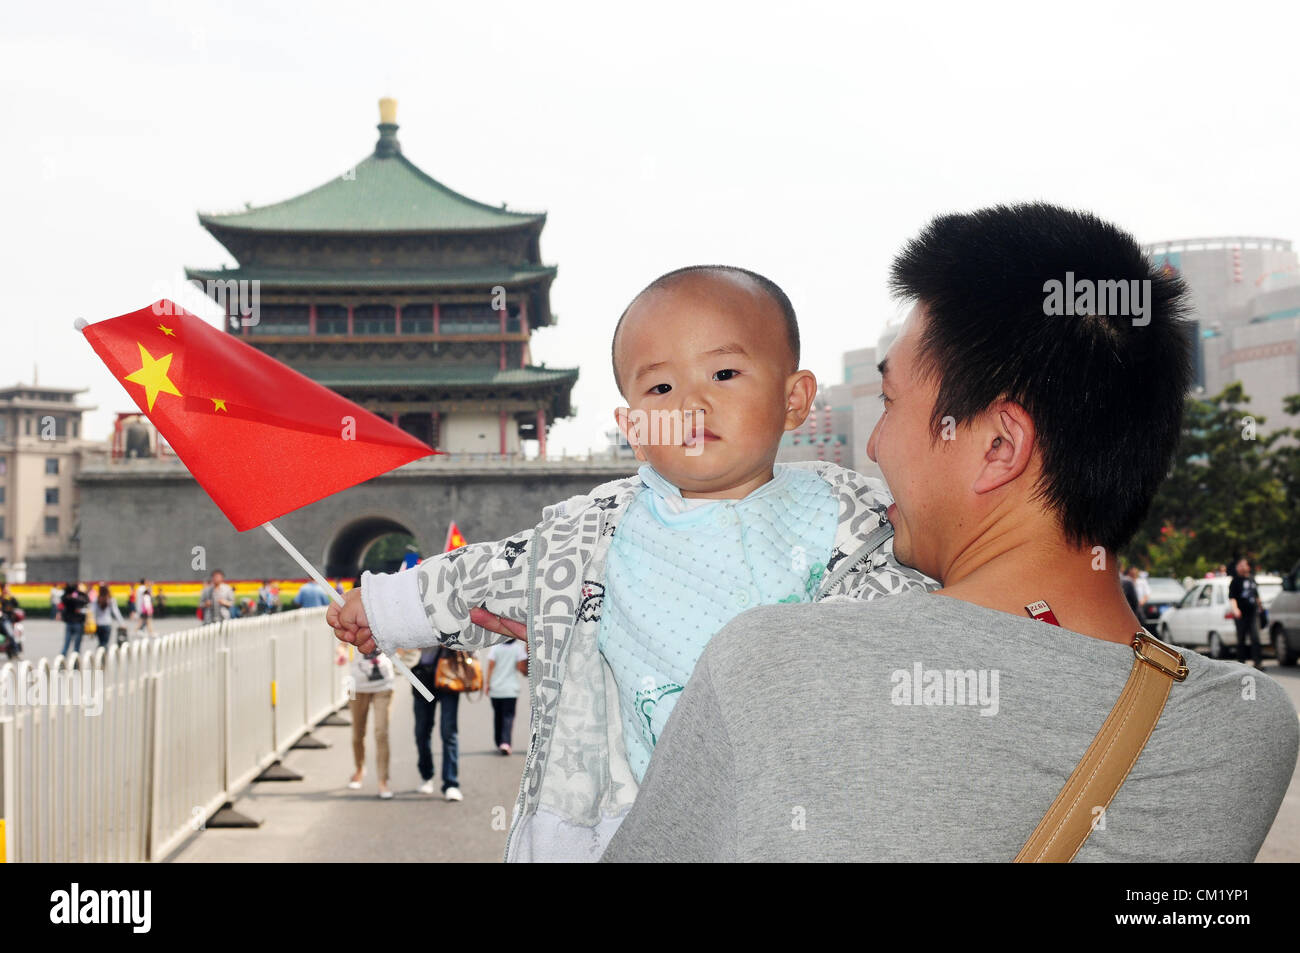 Xian, China. Saturday 15th September, 2012. A young father with his little son holding a Chinese national flag walks Stock Photo